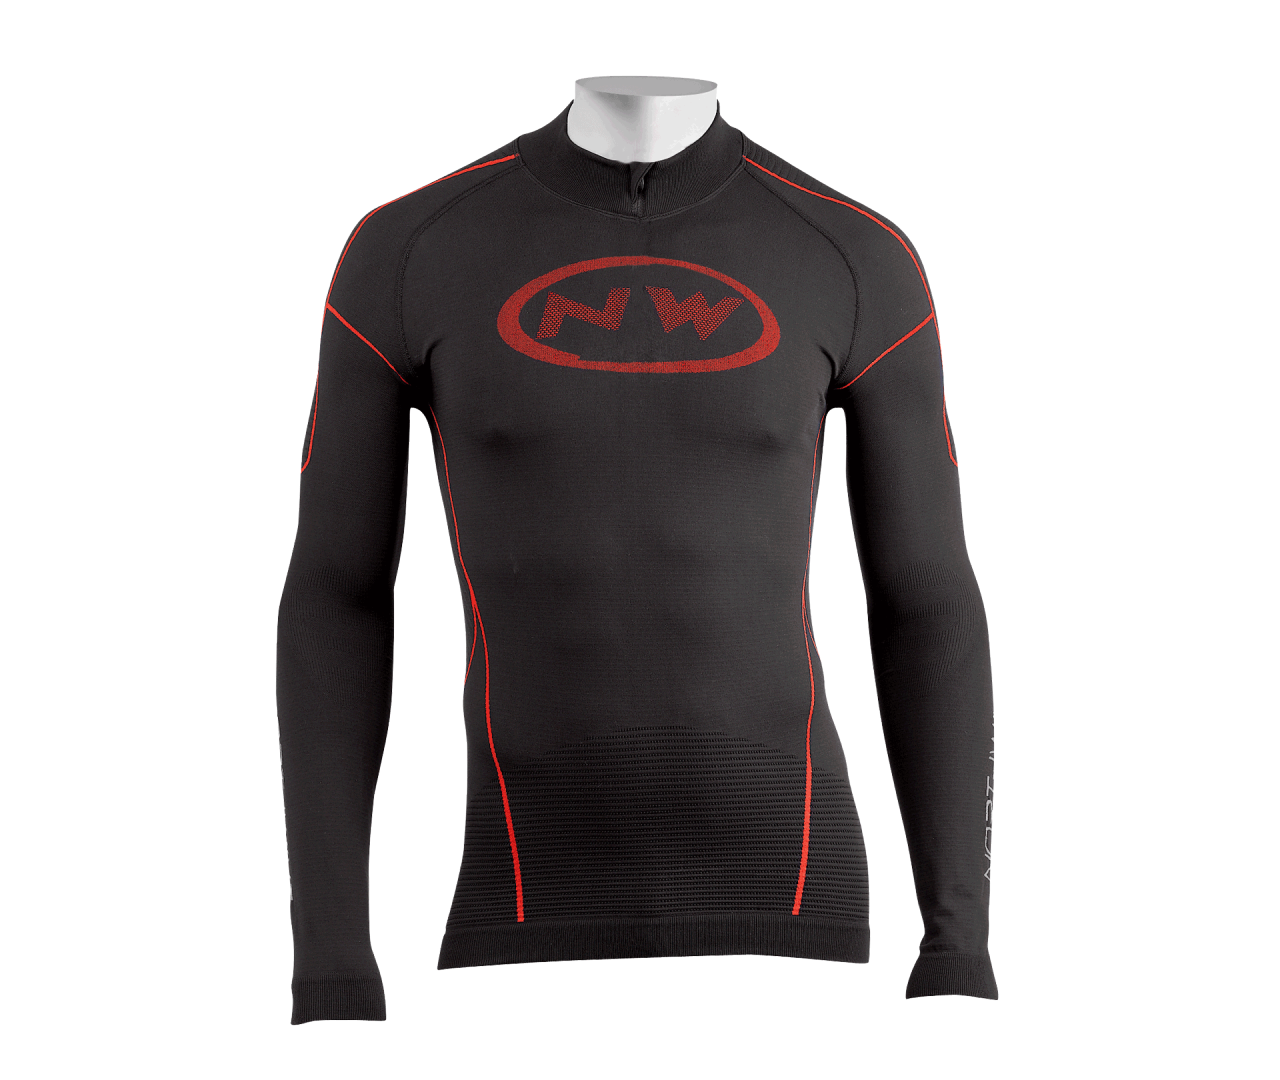 Maglia Intimo Ciclismo Northwave Evolution Tech BLACK-RED